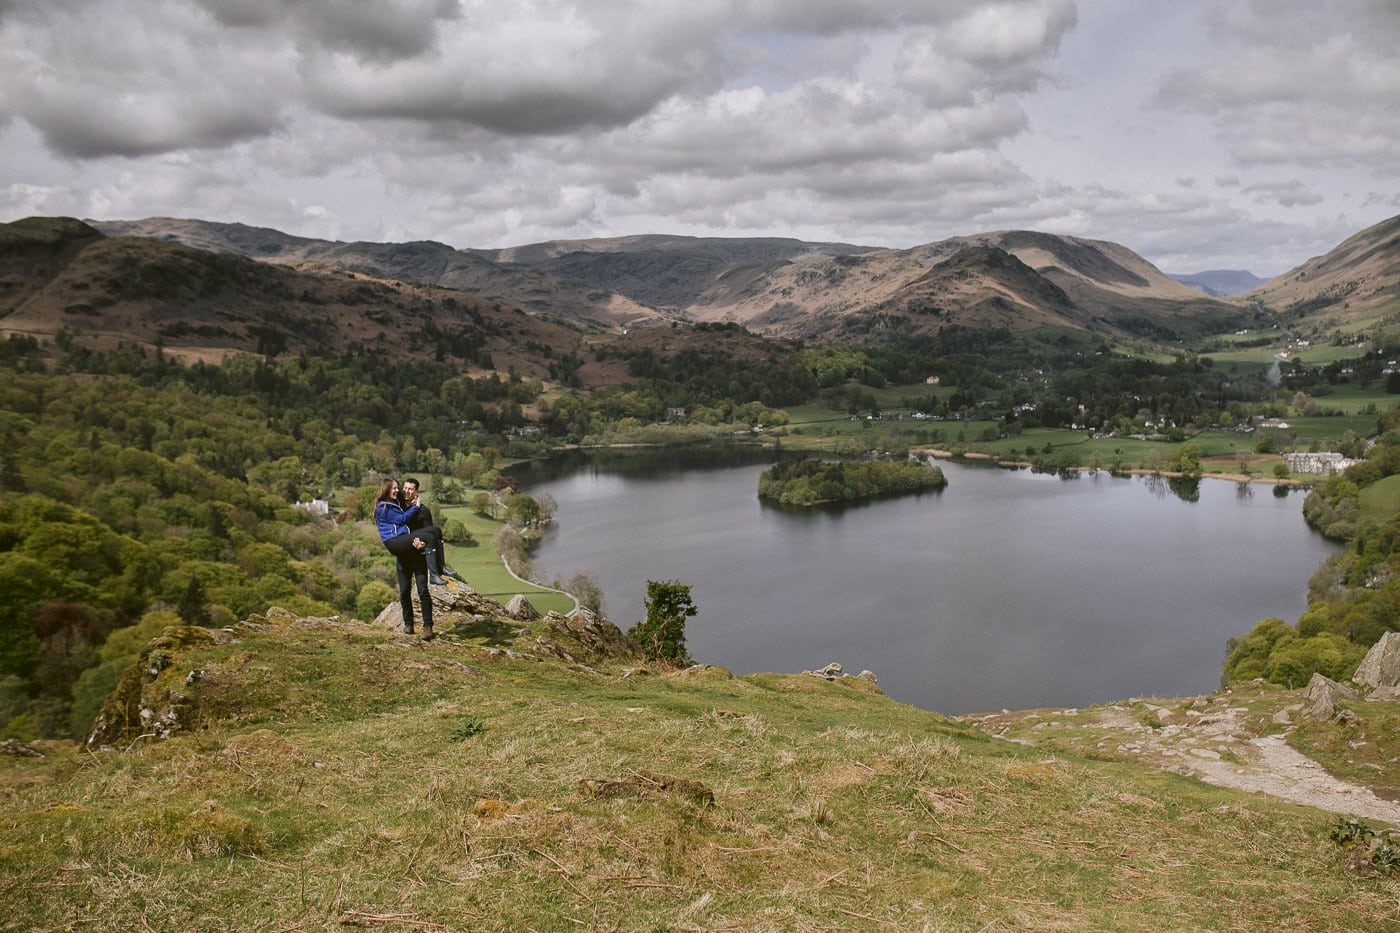 Couple Wedding Proposal in the Lake District